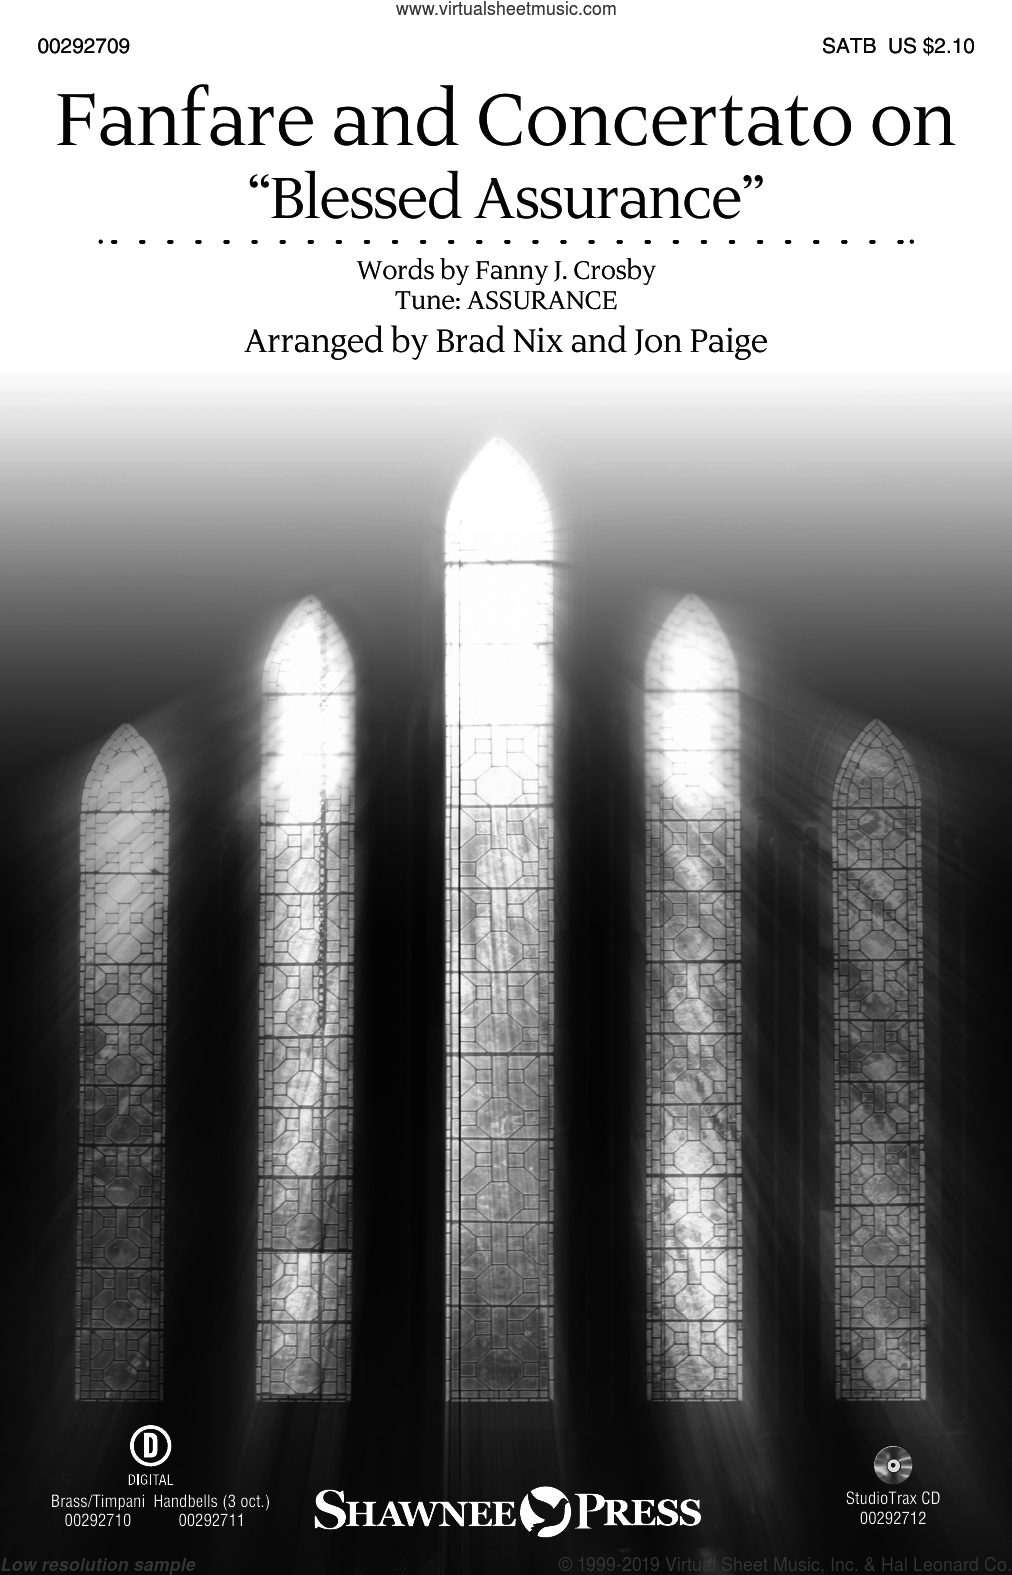 Fanfare And Concertato On 'Blessed Assurance' (arr. Brad Nix and Jon Paige) sheet music for choir (SATB: soprano, alto, tenor, bass) by Fanny J. Crosby, Brad Nix and Jon Paige, intermediate skill level